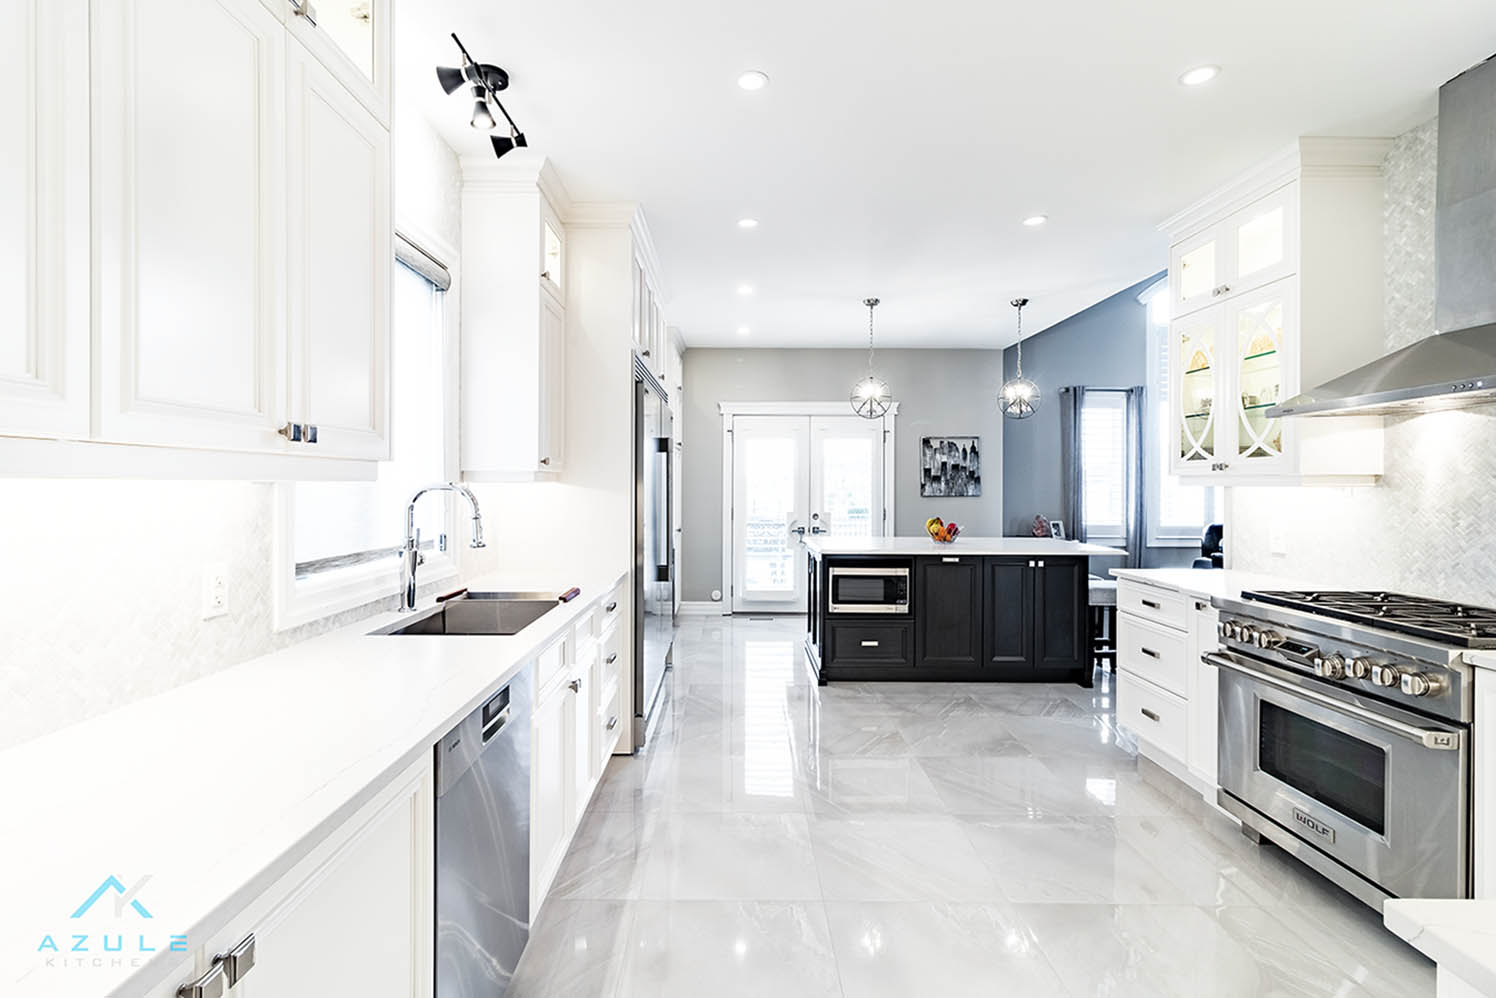 Azule Kitchens – Provides the Best Home Renovation Designs